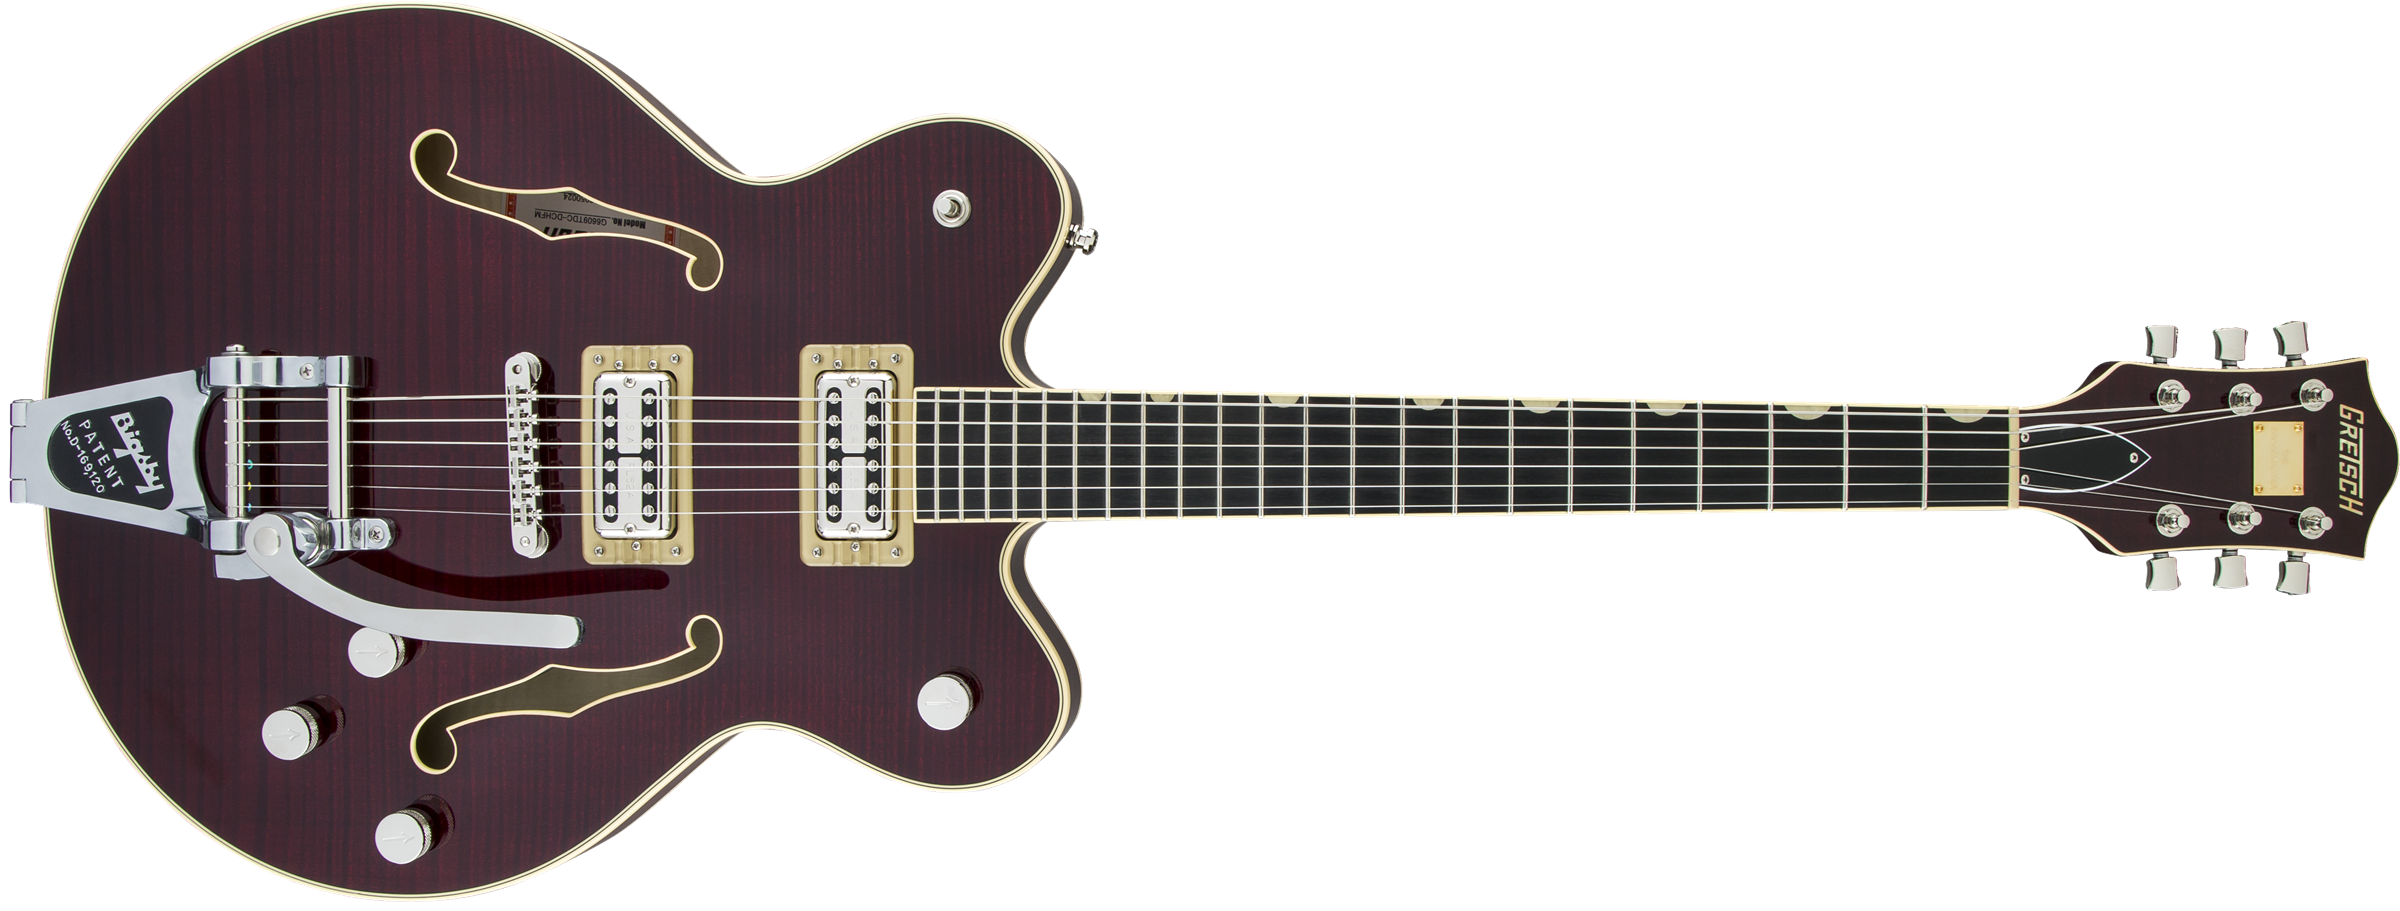 GRETSCH-G6609TFM-Players-Edition-Broadkaster-Center-Block-Double-Cut-with-String-Thru-Bigsby-USA-FullTron-Pickups-Tiger-Flame-Maple-Dark-Cherry-Stain-sku-571000158